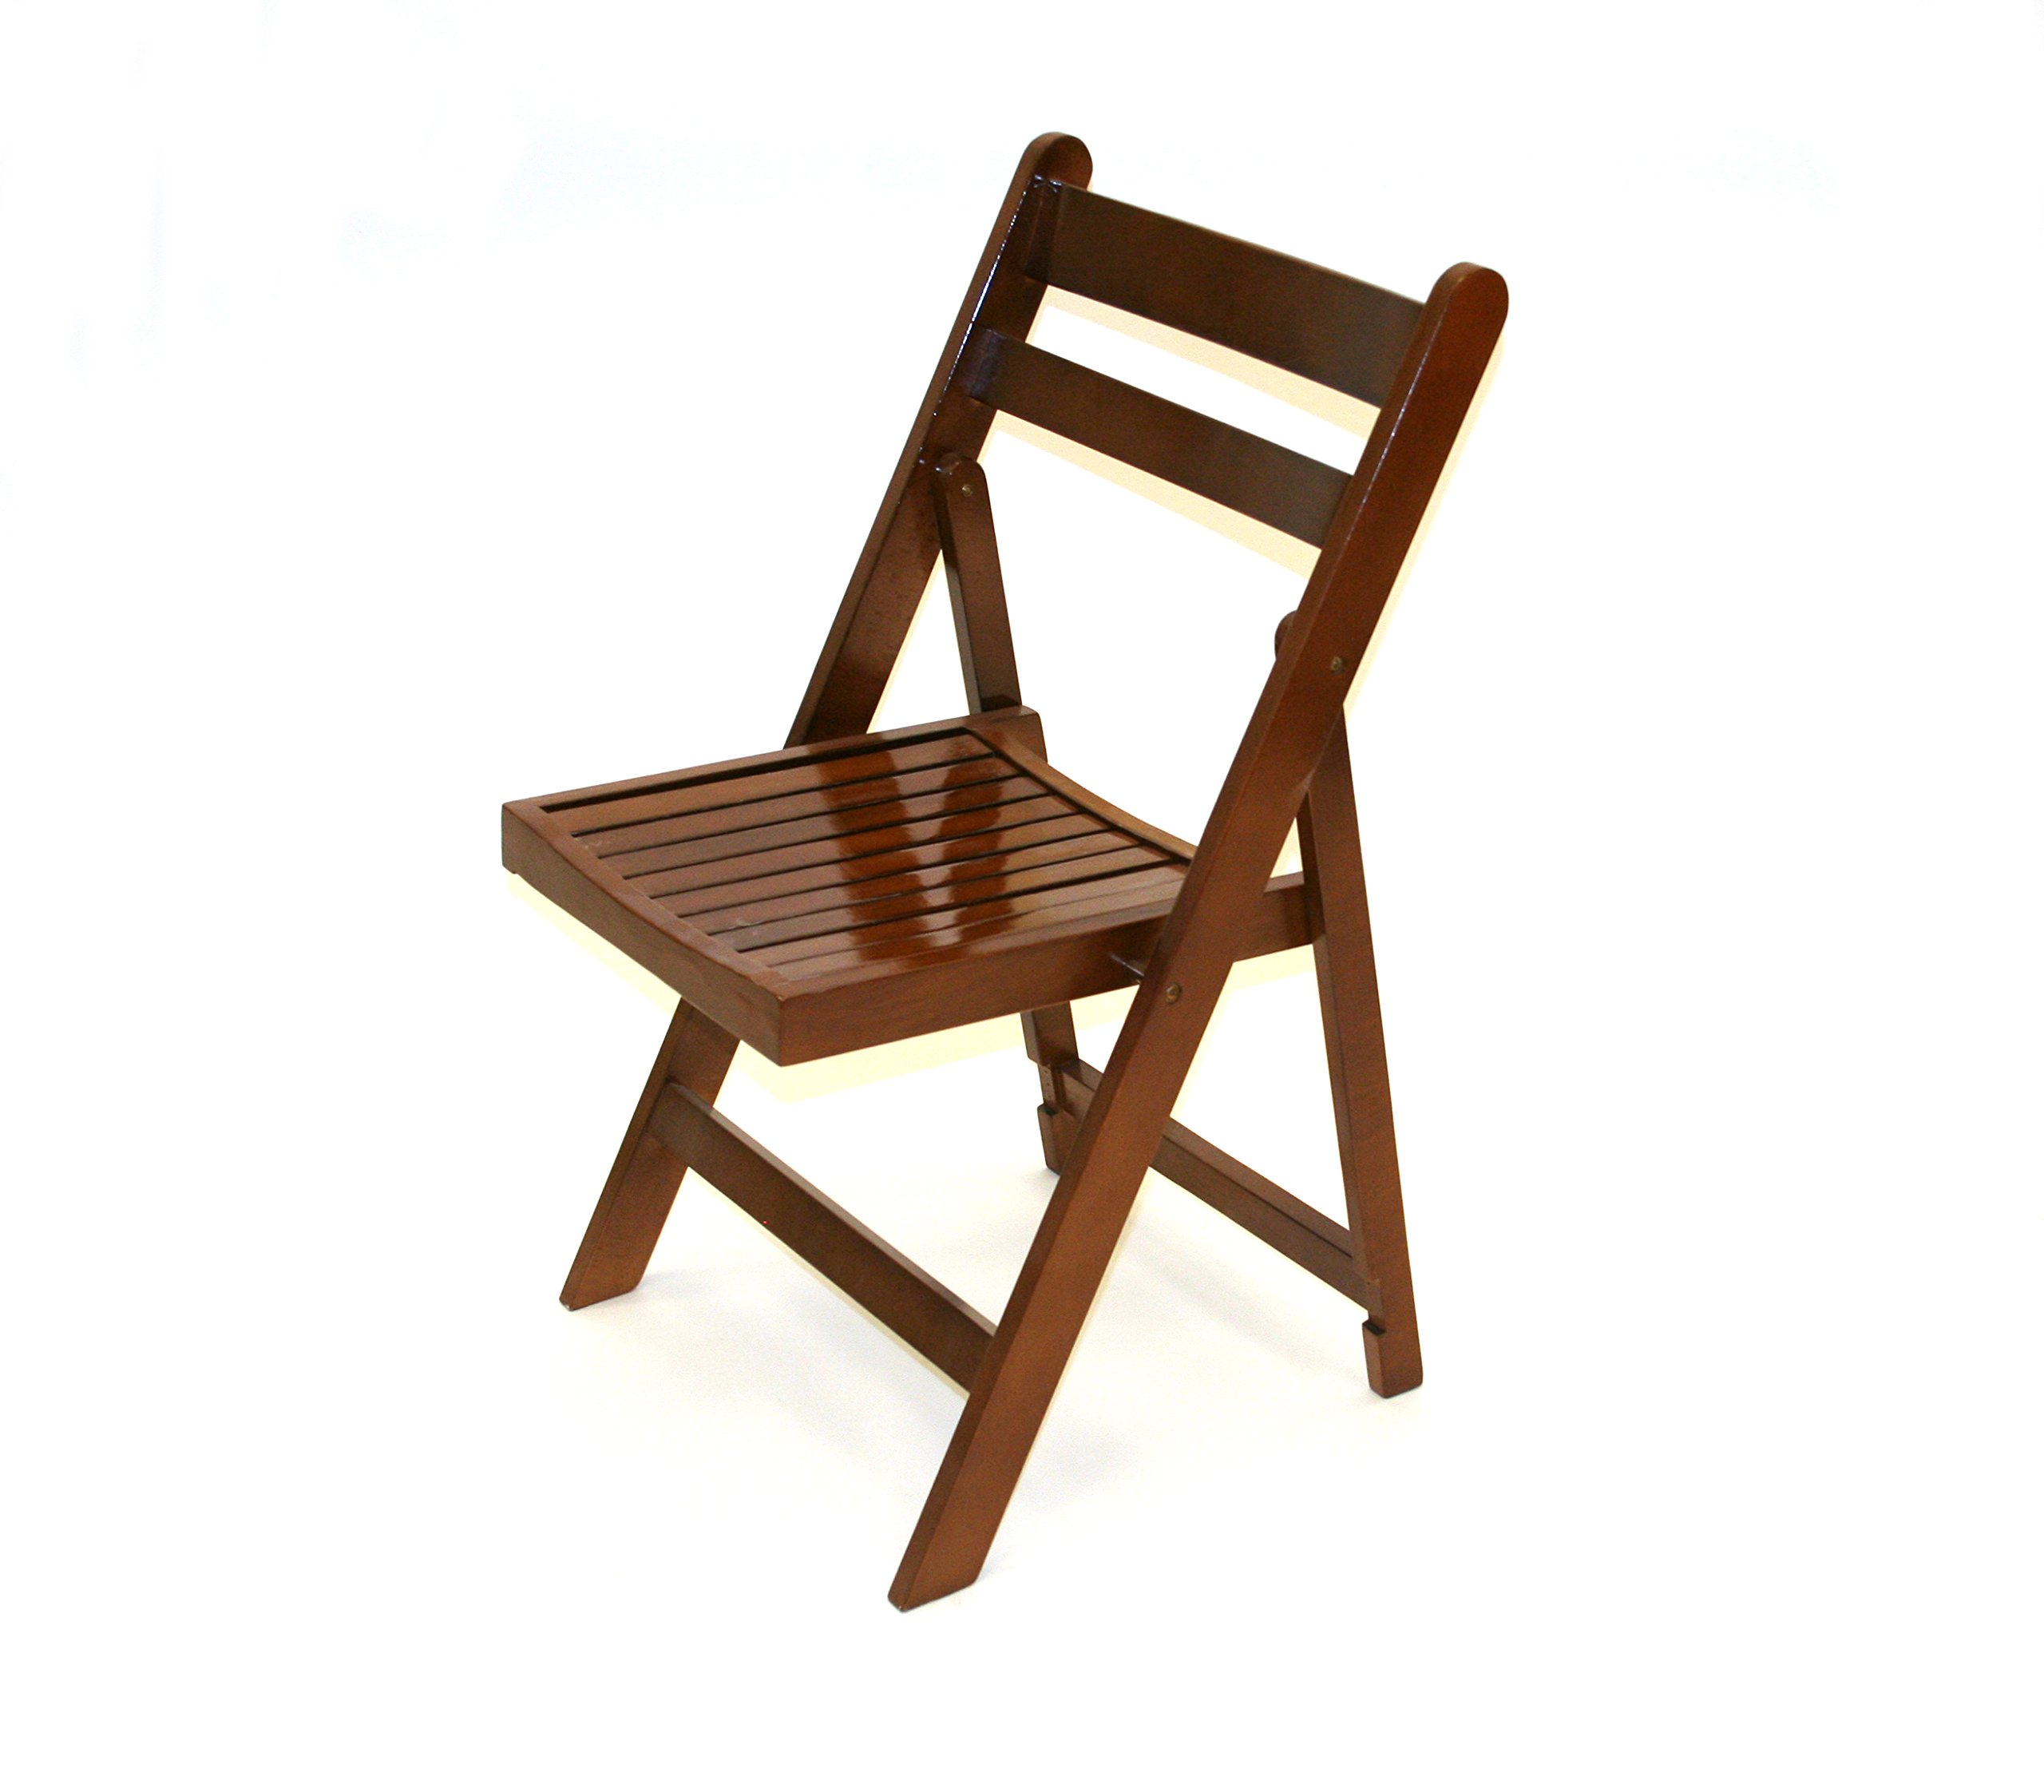 Brown Wooden Folding Chairs, Garden Chairs, Party Furniture